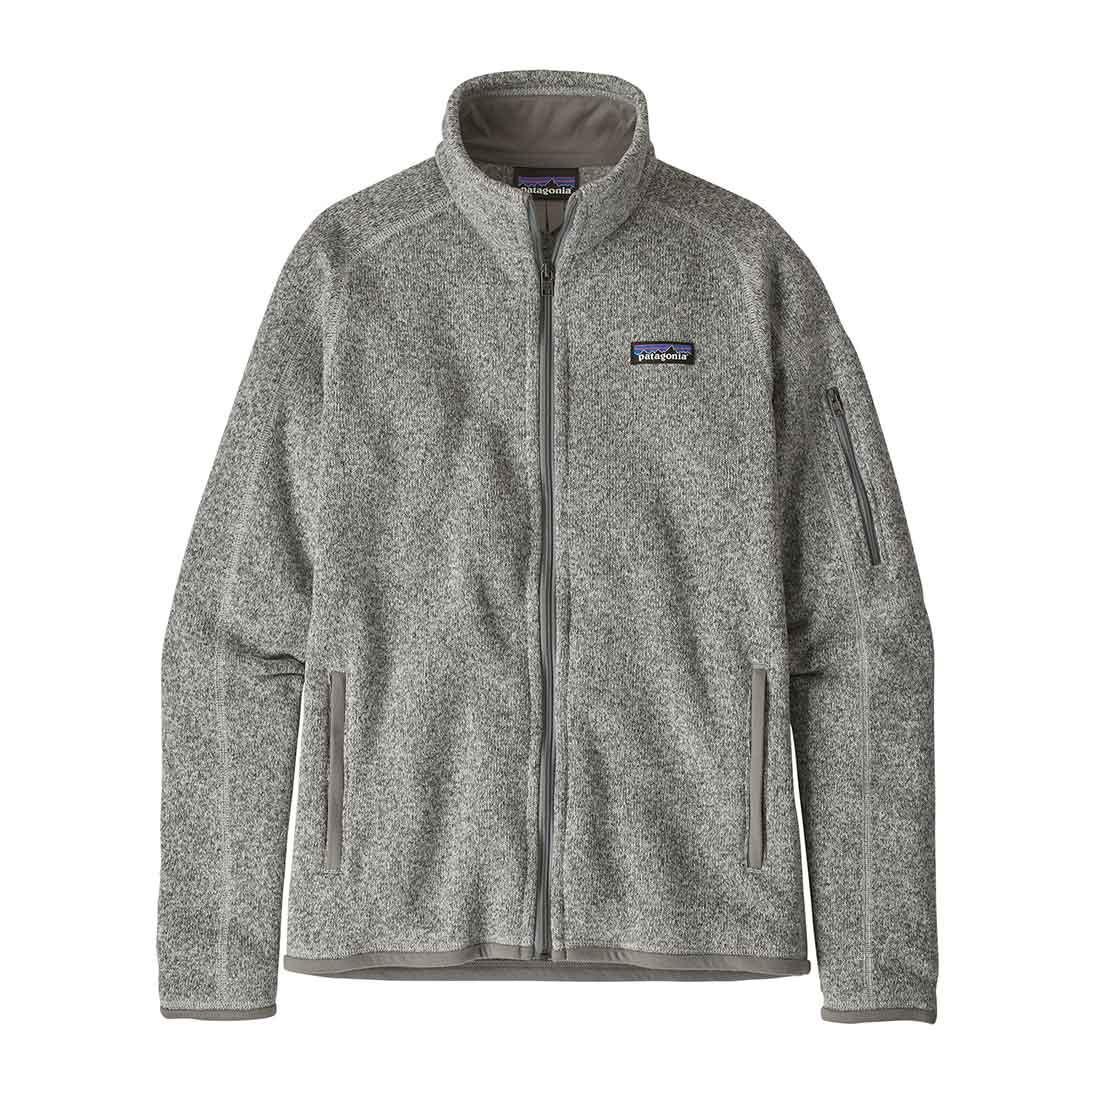 Patagonia Women's Better Sweater Jacket - Birch White